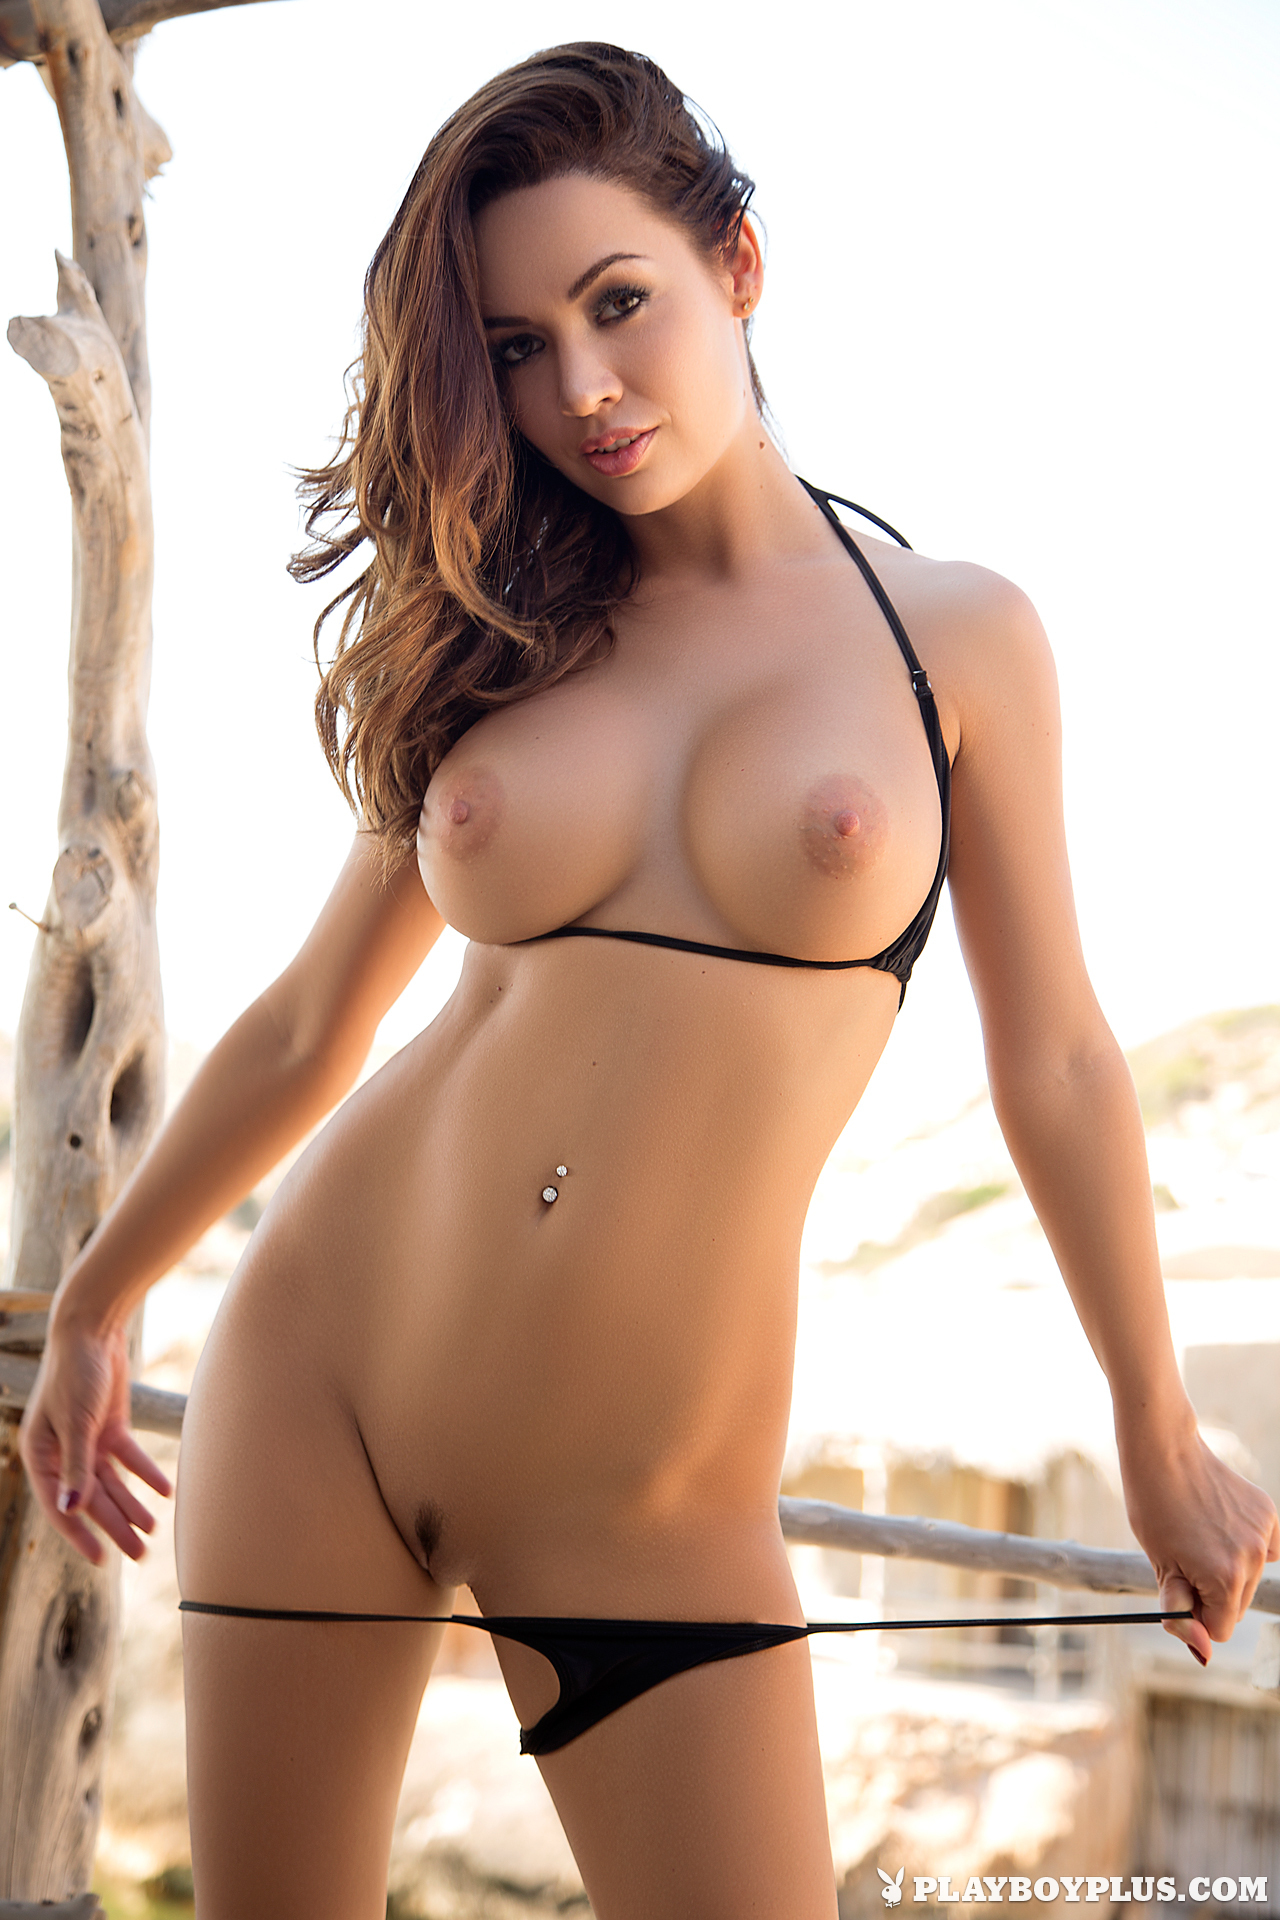 naked images of the hottest girls in the world